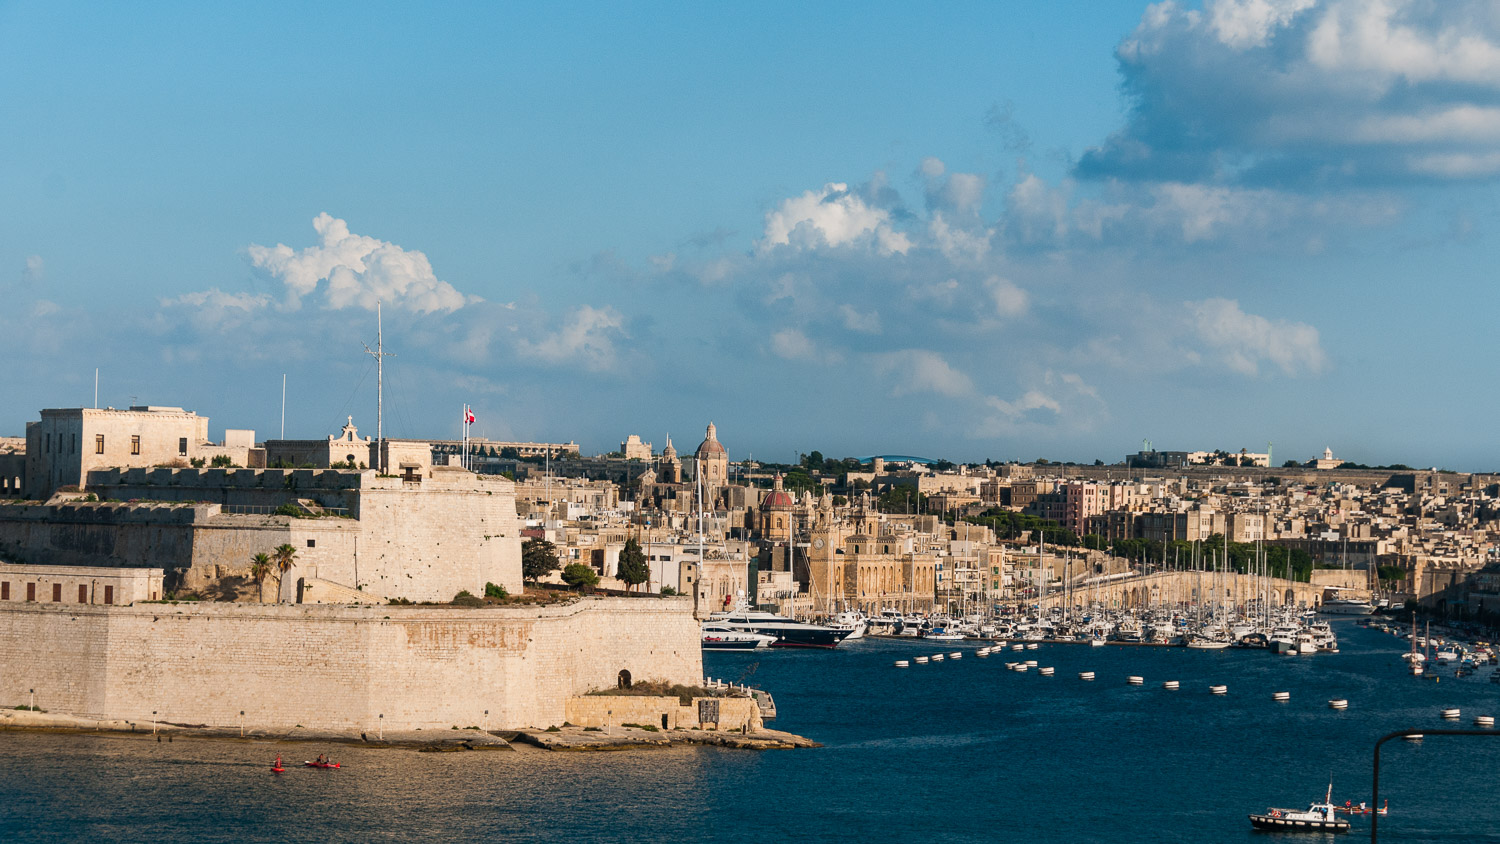 MA10148-The-fortifications-of-Valetta.jpg